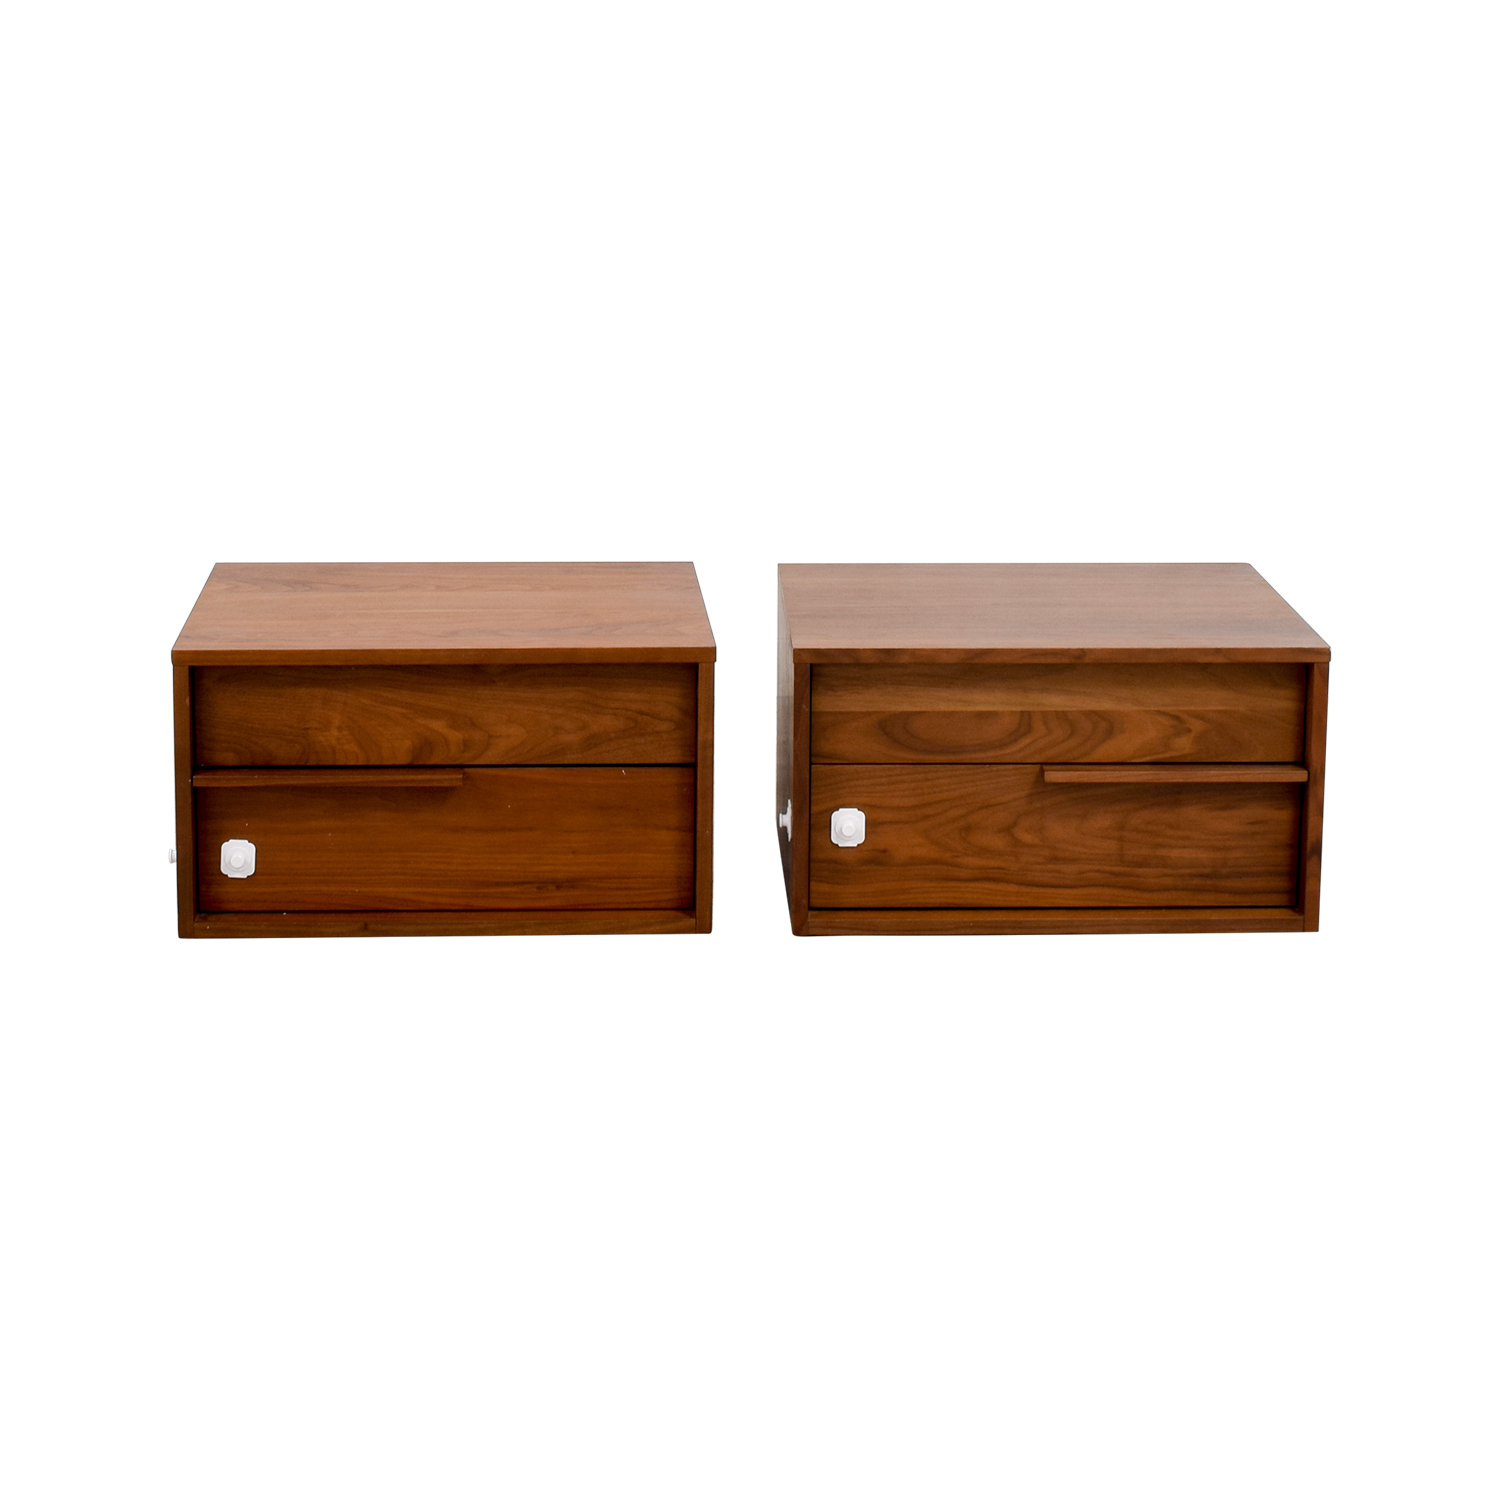 41% OFF Modloft Modloft Jane Two Drawer Nightstands Tables